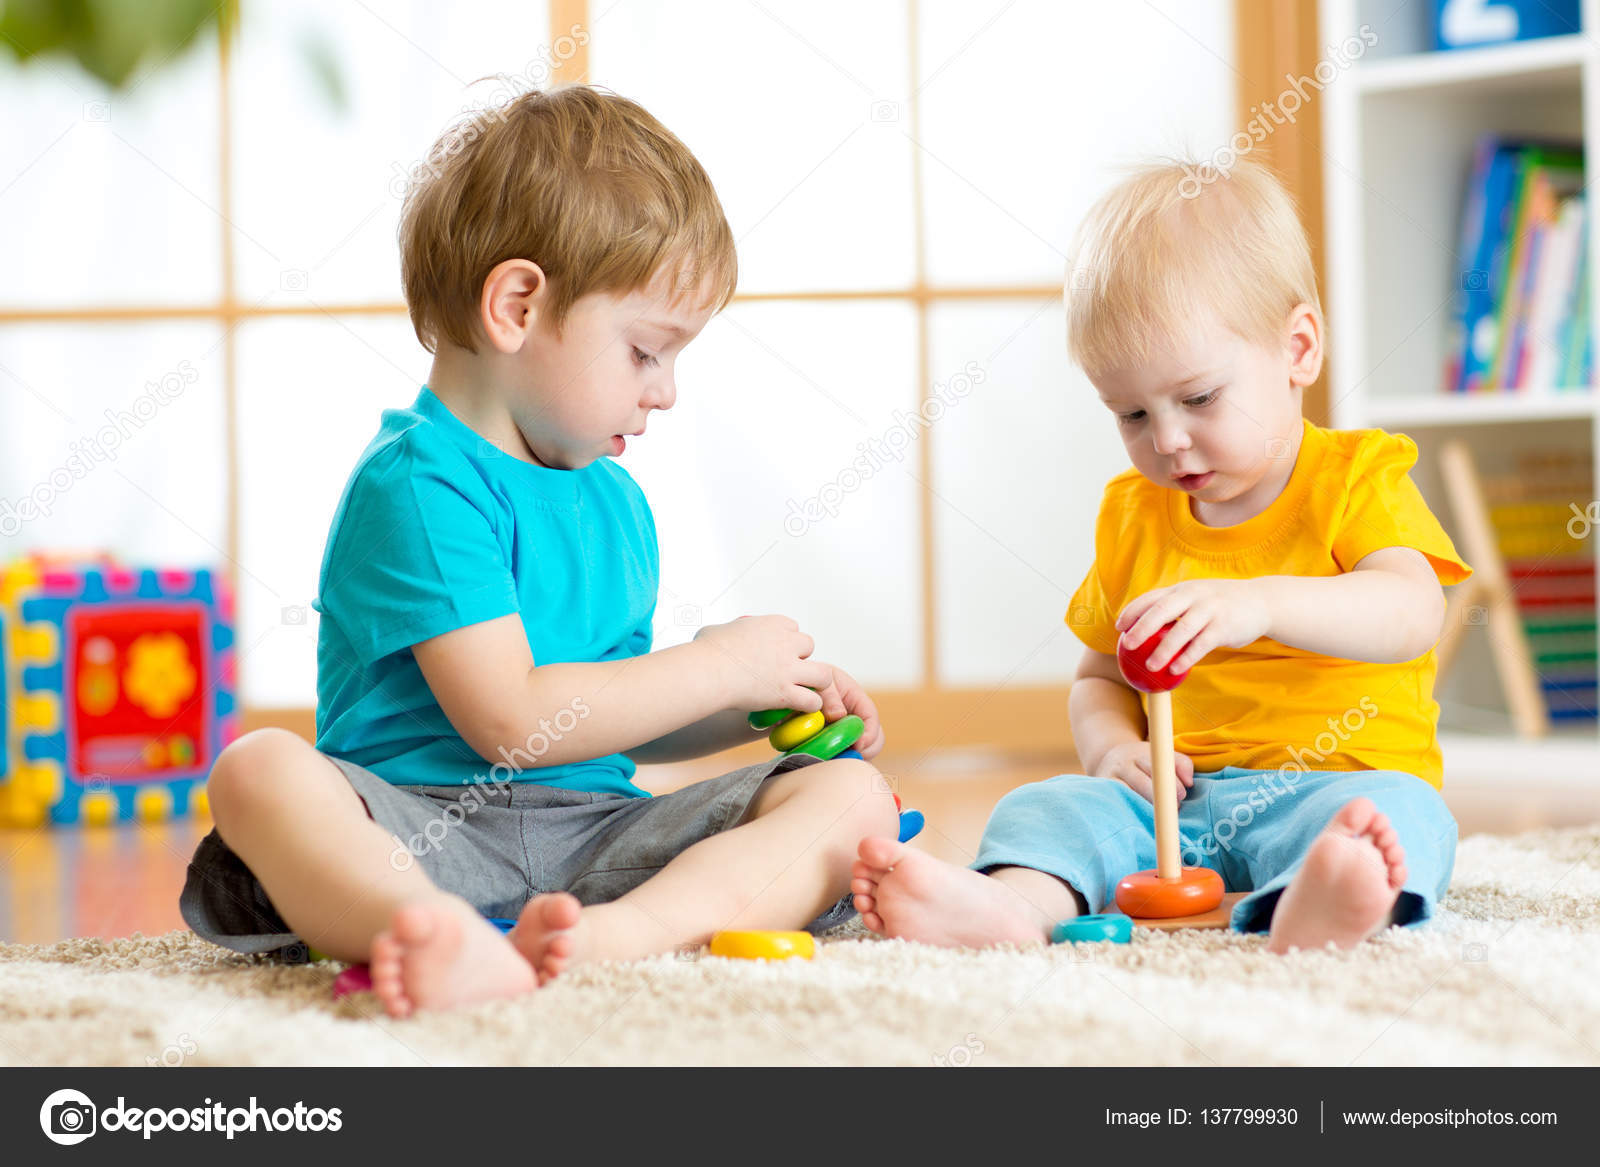 Children play with educational toys in preschool or ...